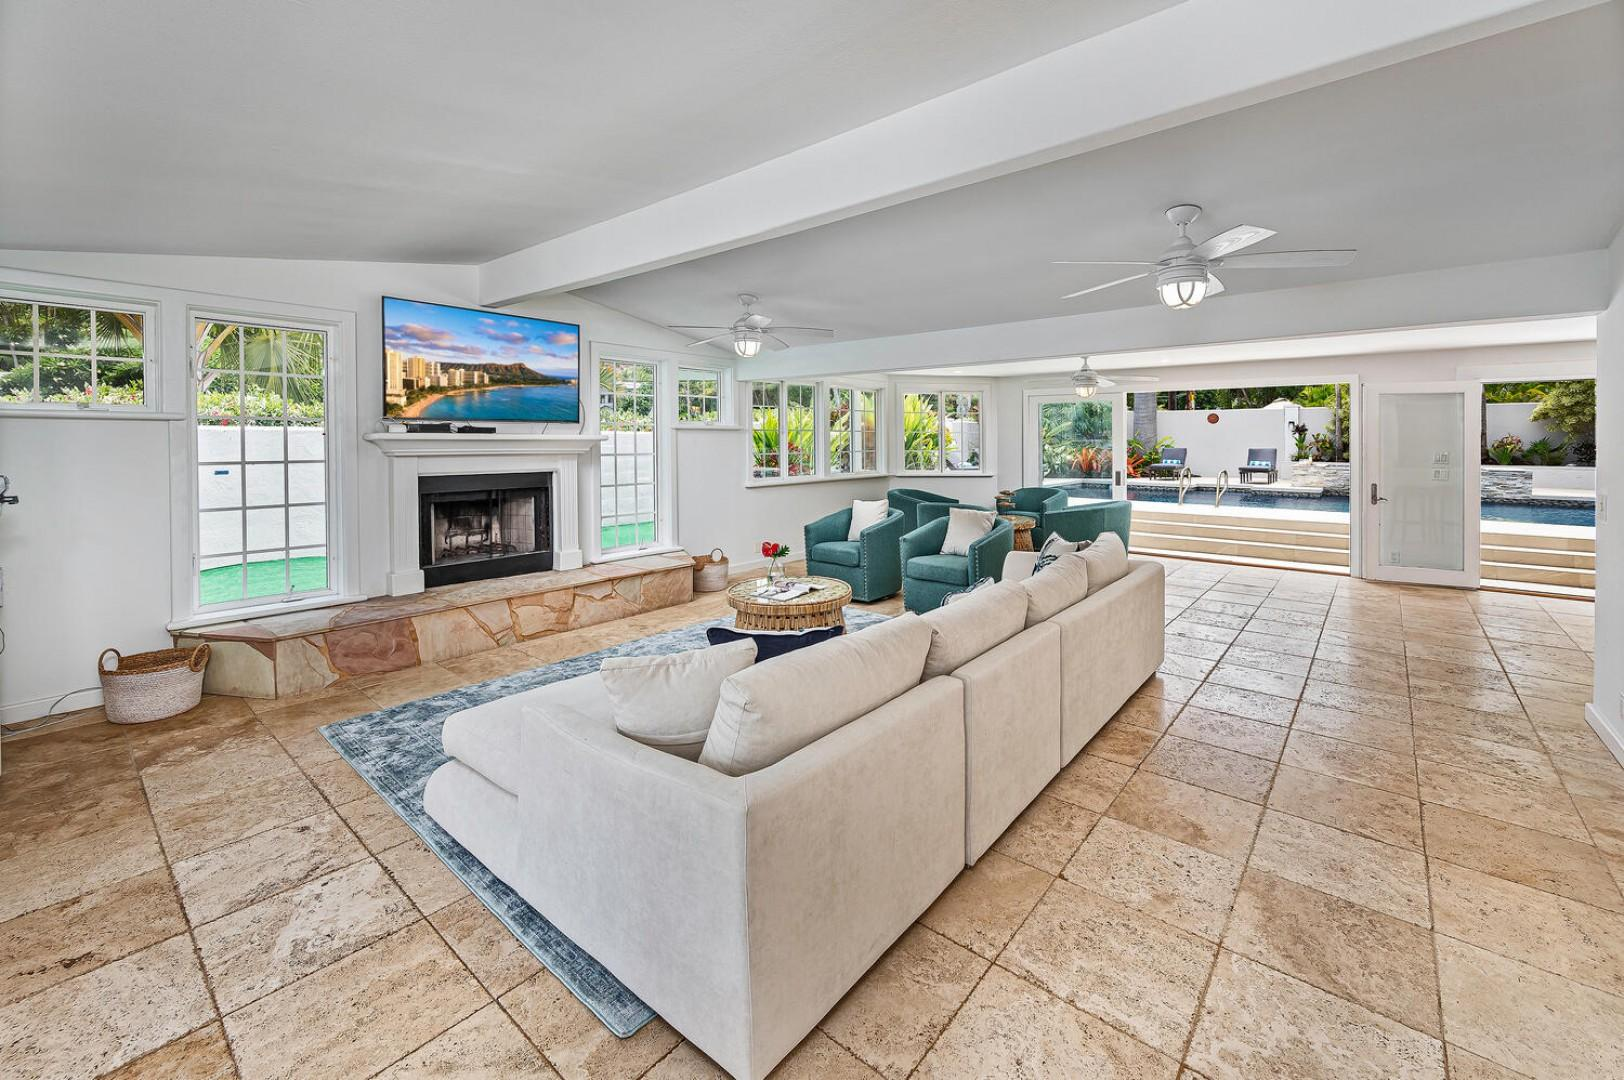 Enjoy the islands cross breeze in the main living-room, complete with a front porch to watch the basketball players in the group!